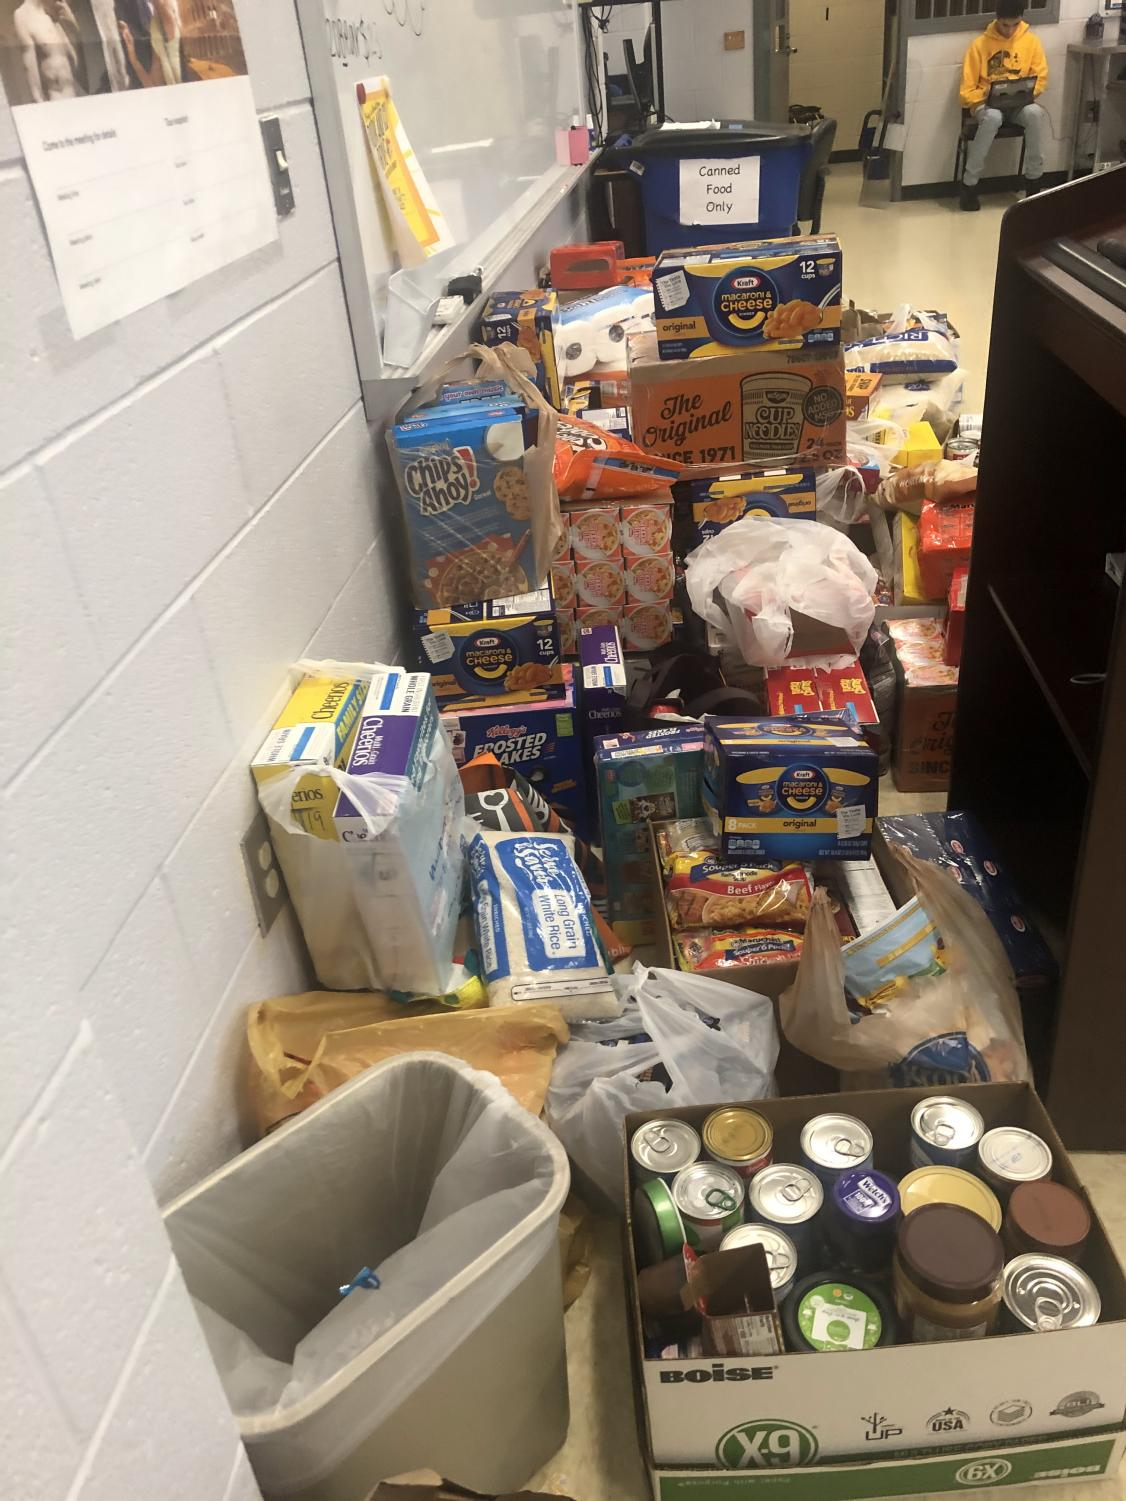 Students donated hundreds of pounds of food to SkillsUSA's Thanksgiving food drive. Donations will go to North Fulton Community Charities.